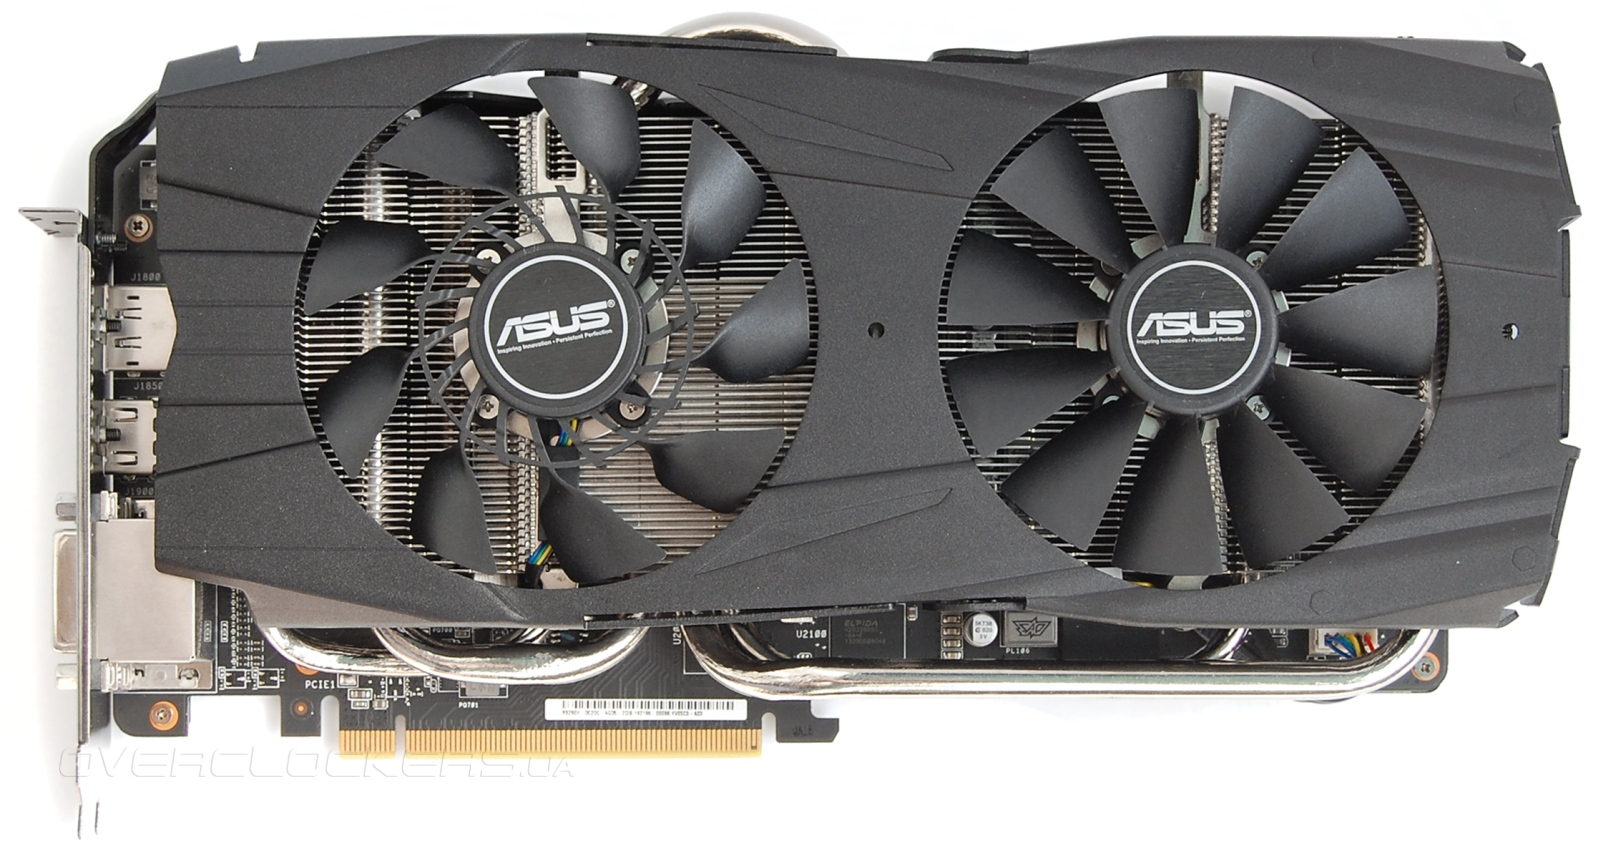 Asus AMD Radeon R9 290X R9290X-DC2-4GD5 Drivers Windows